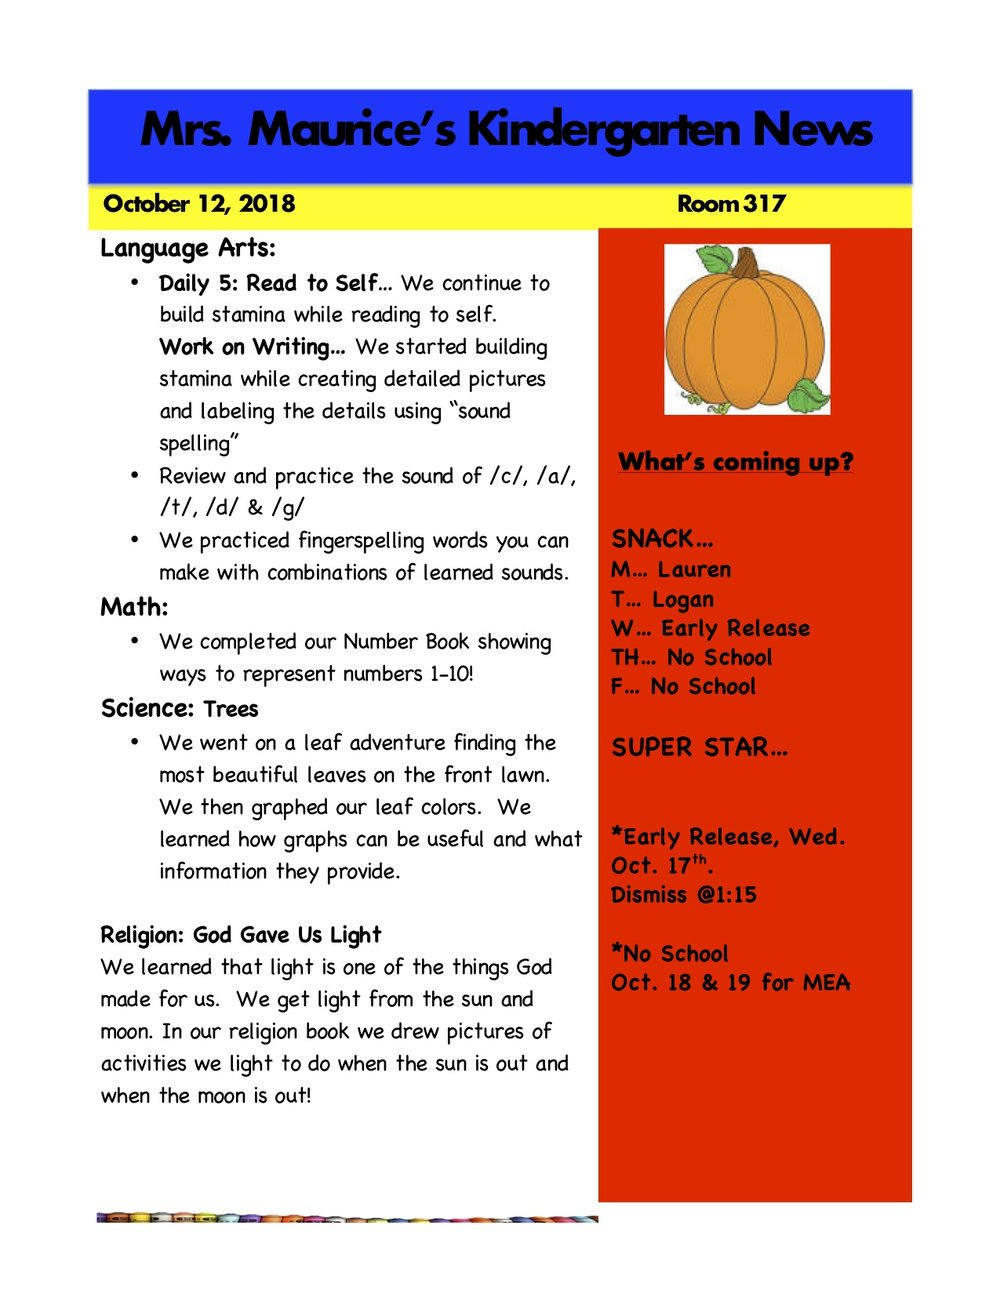 Kindergarten News Oct. 12.jpg